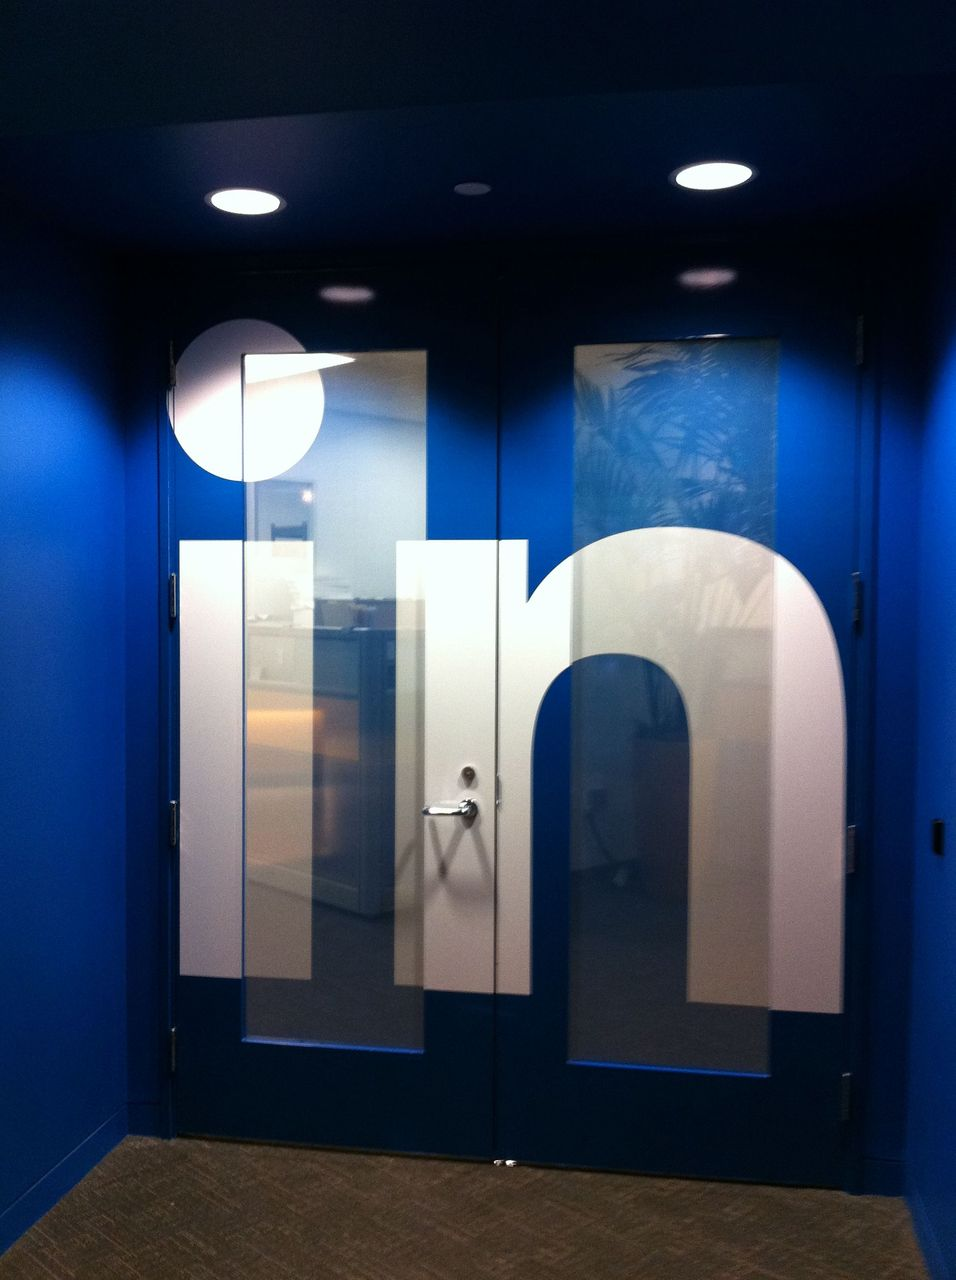 """LinkedIn HQ When I start a company I want """"DK"""" on the doors. Cornell and Dartmouth had an alumni event together at the LinkedIn HQ in Mountain View. Several recruiting experts talked about how to make an effective LinkedIn profile, along with other job seeking/recruiting tips. My favorite parts were: The host made a historical reference to Jesus Christ. A panelist said you should only have a picture in your LinkedIn profile if you are """"diverse."""" Another panelist said you shouldn't have a picture in your profile if you're """"fat and ugly."""""""